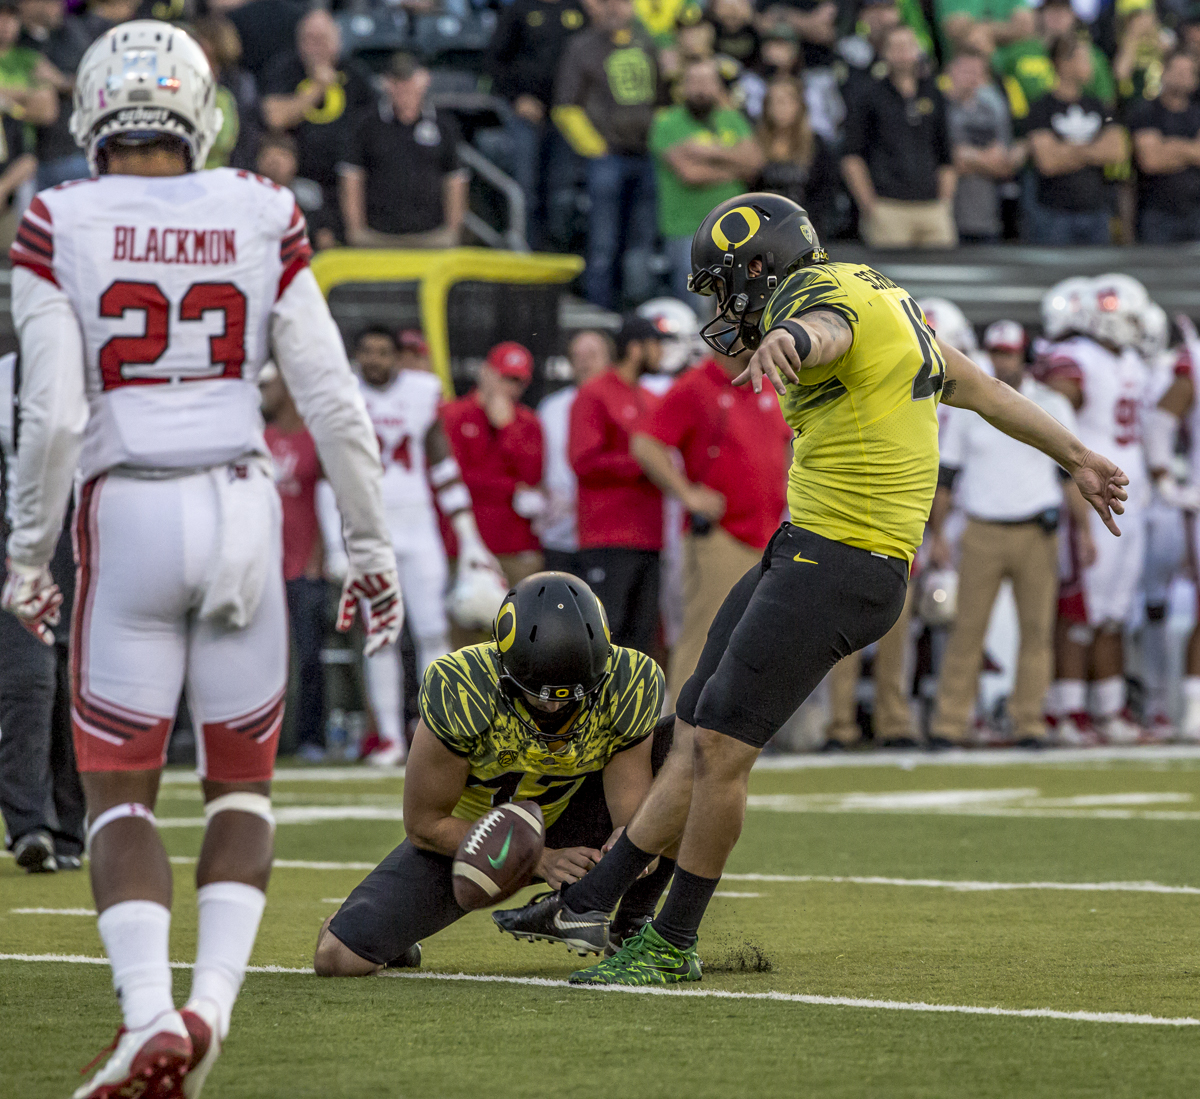 Oregon kicker Aidan Schneider (#41) kicks the ball for a successful point after conversion. The Oregon Ducks defeated the Utah Utes 41 to 20 during Oregon's homecoming game at Autzen Stadium on Saturday, October 28, 2017. Photo by Ben Lonergan, Oregon News Lab